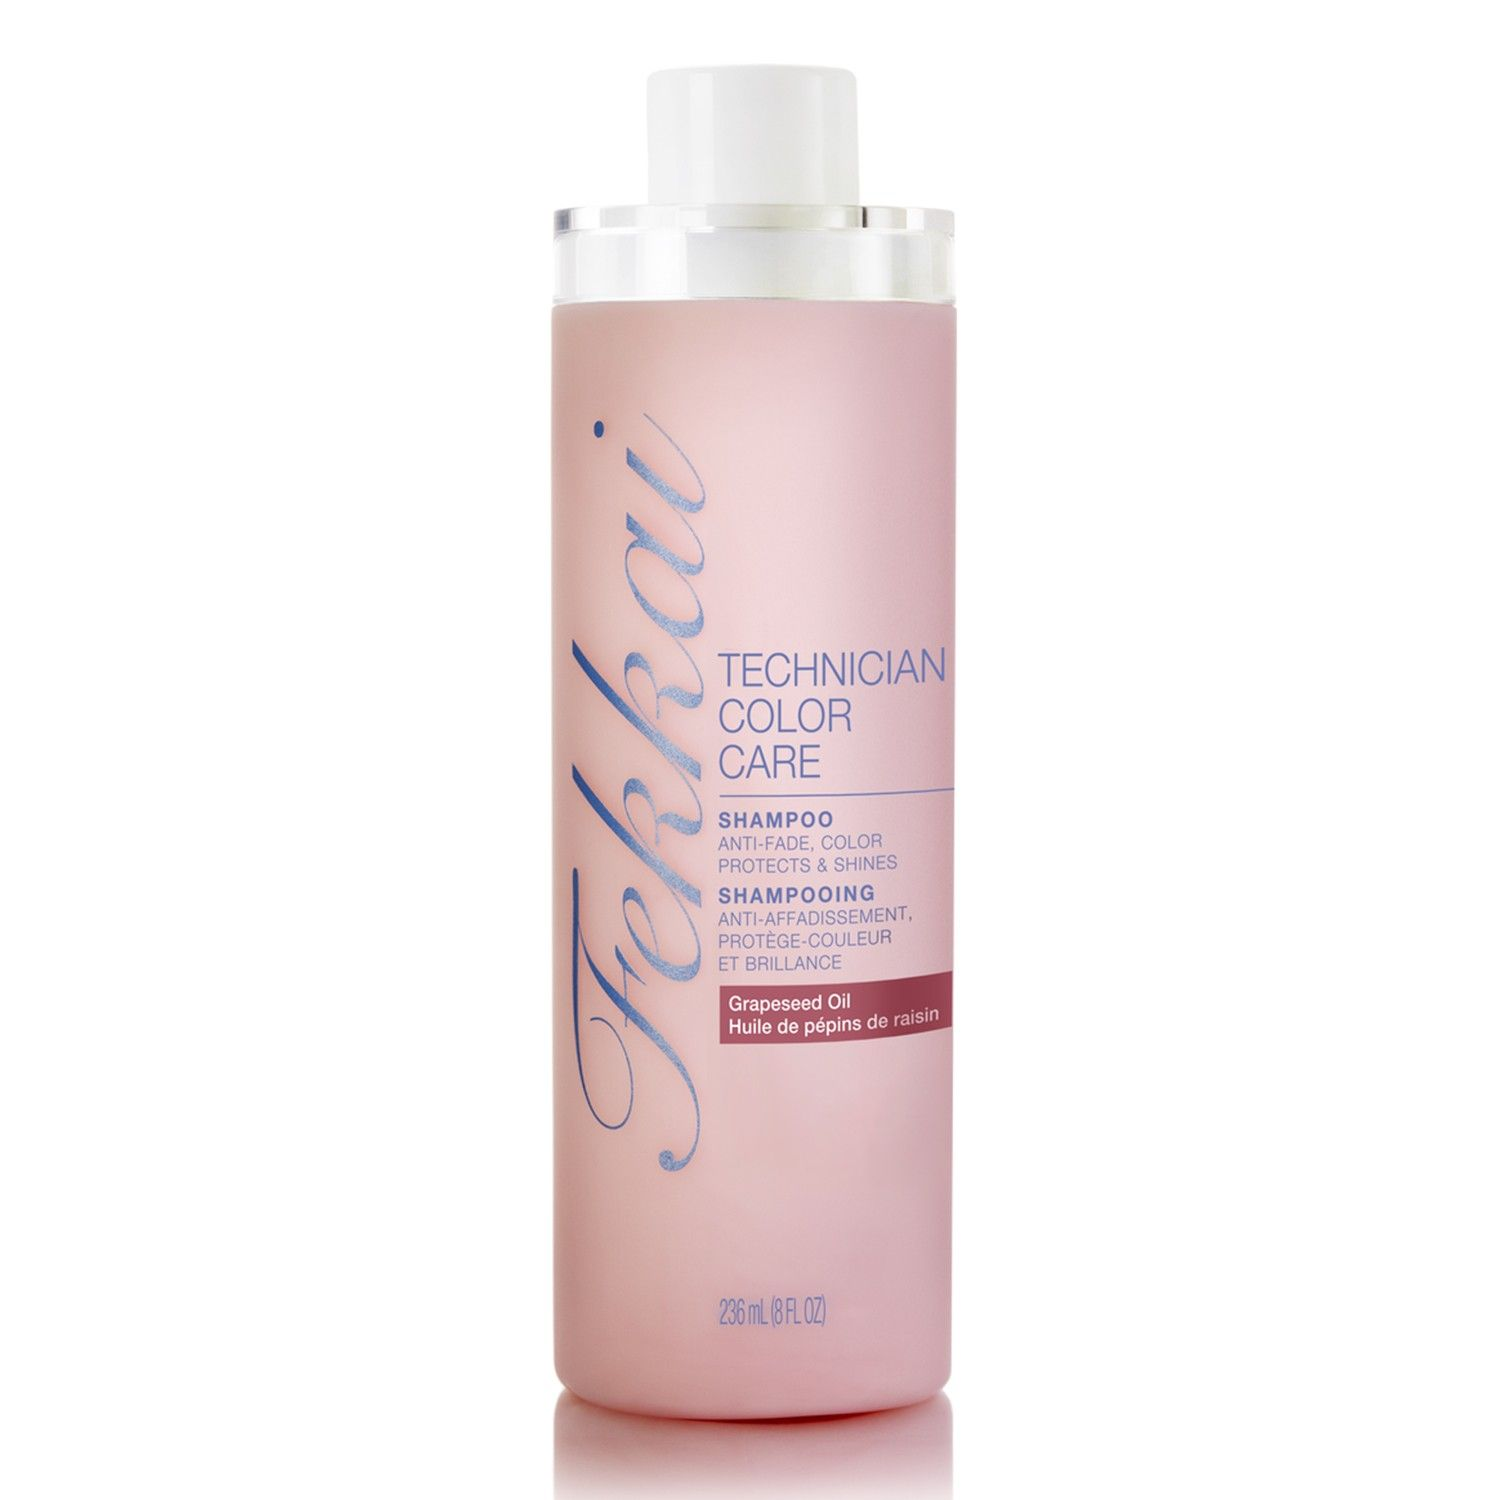 Fekkai TECHNICIAN COLOR CARE SHAMPOO [Small] (236 ml / 8.0 fl oz)